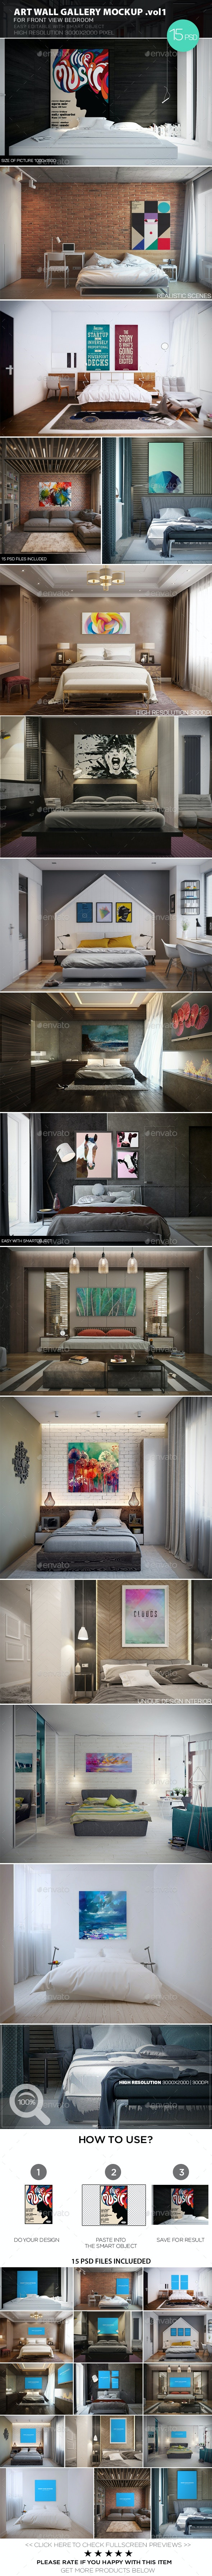 Art Wall Gallery Mockup vol.1 - Front View Bedroom - Posters Print